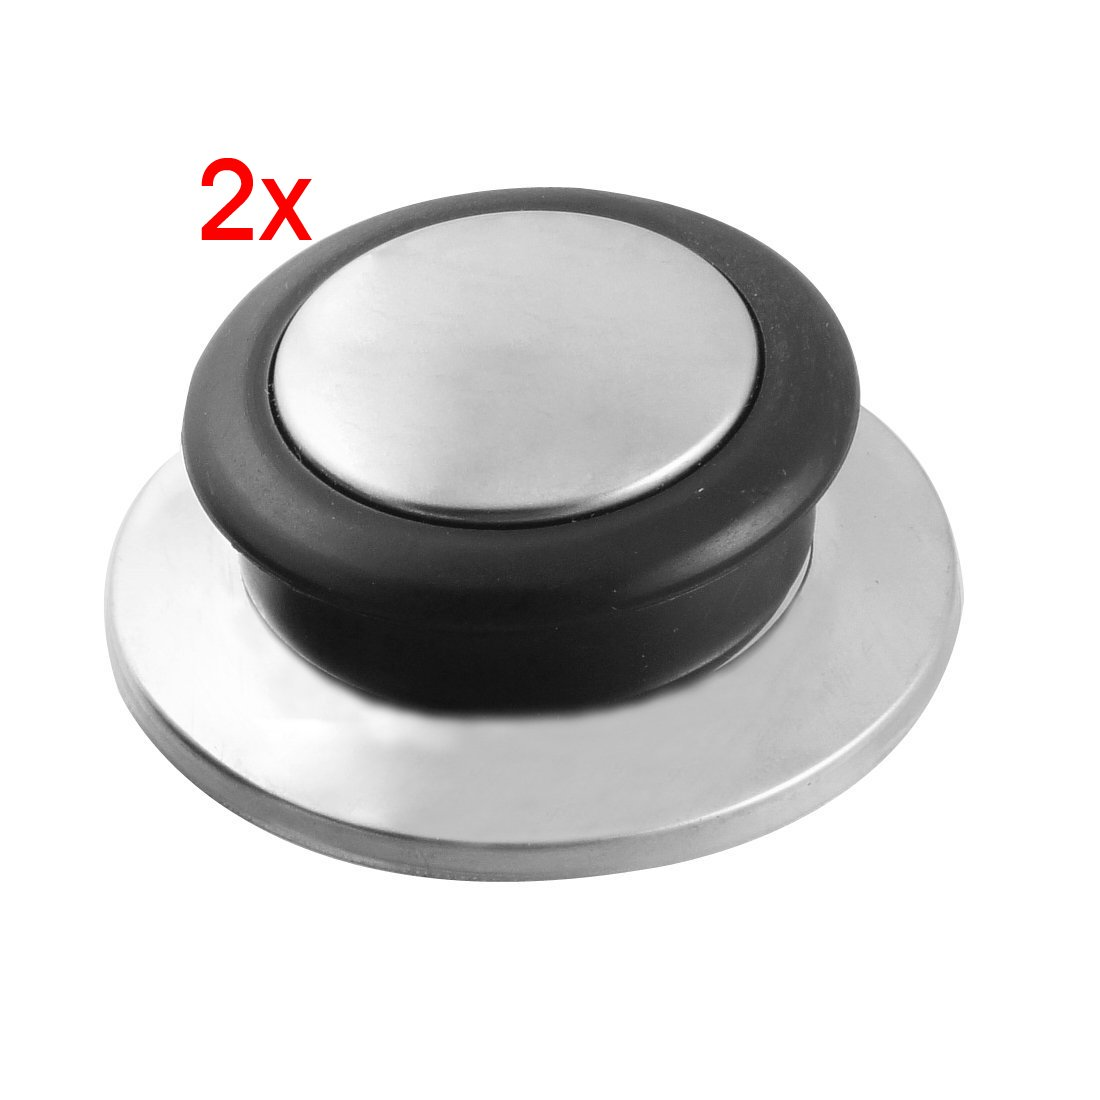 SODIAL(R) 2 Pcs Kitchenware Black Silver Tone Tempered Glass Pot Pan Lid Knob AEQW-WER-AW143051